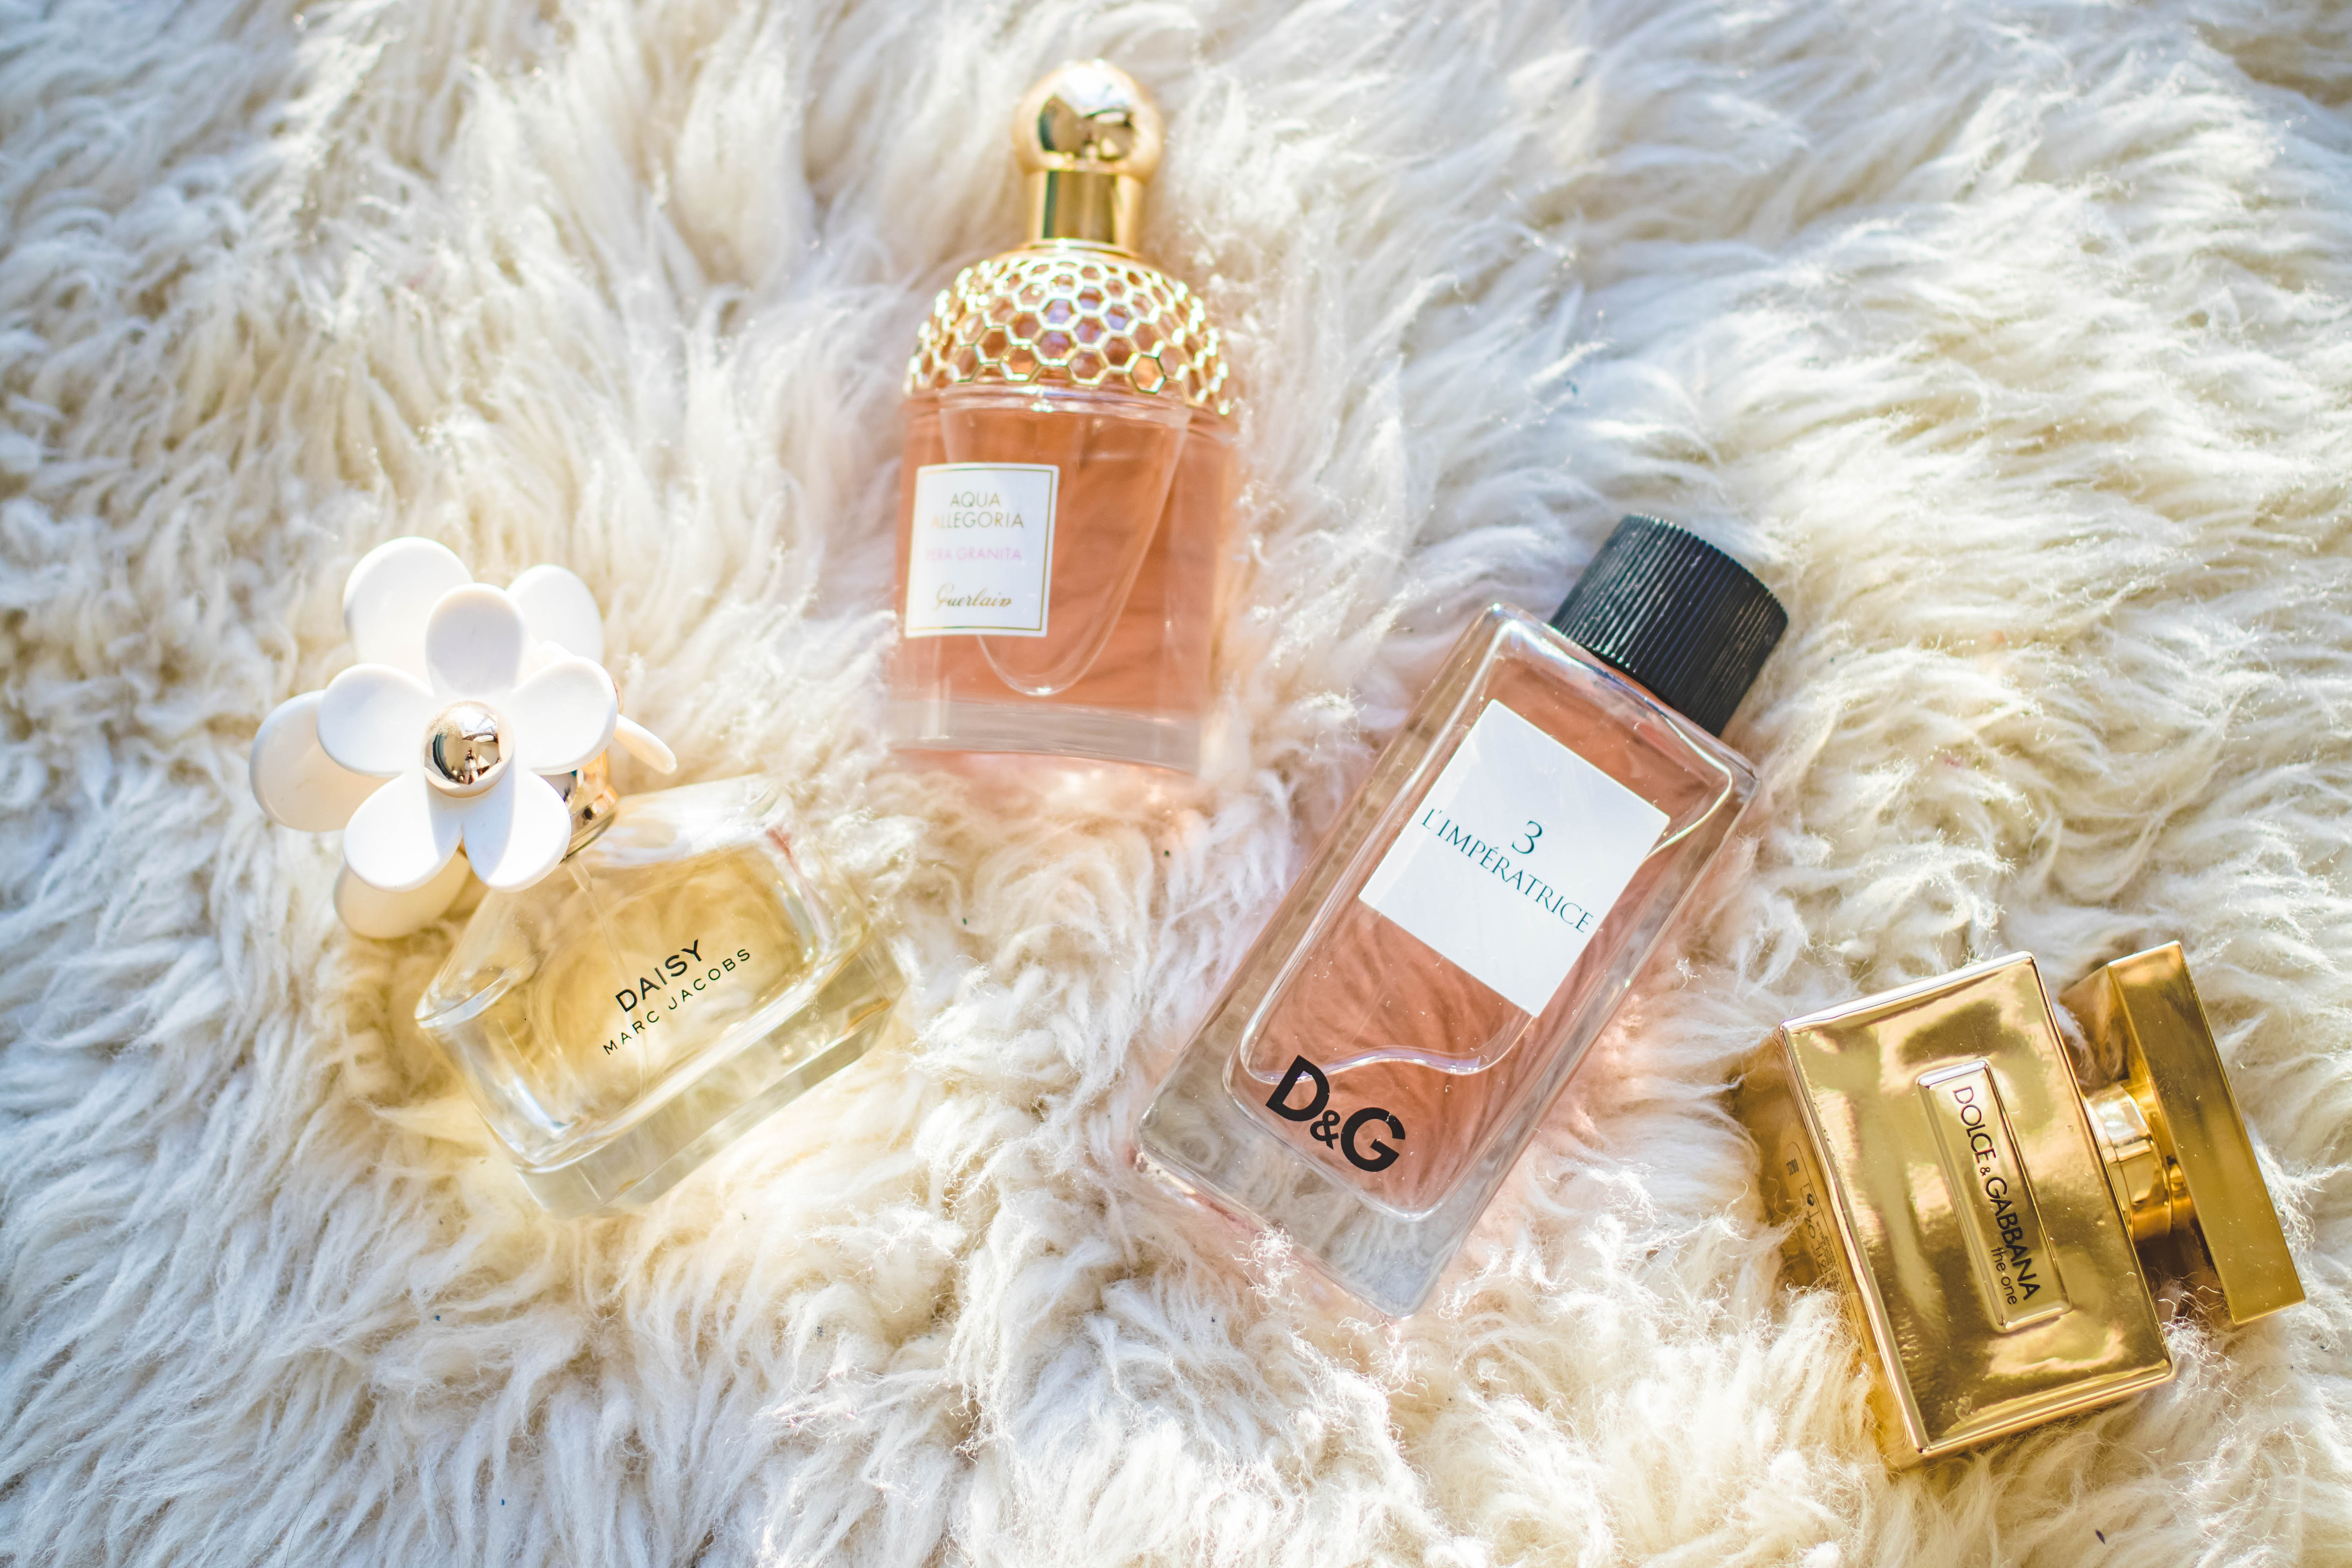 Four Assorted Perfume Glass Bottles, Hygiene, Luxury, Healthcare, Gold, HQ Photo